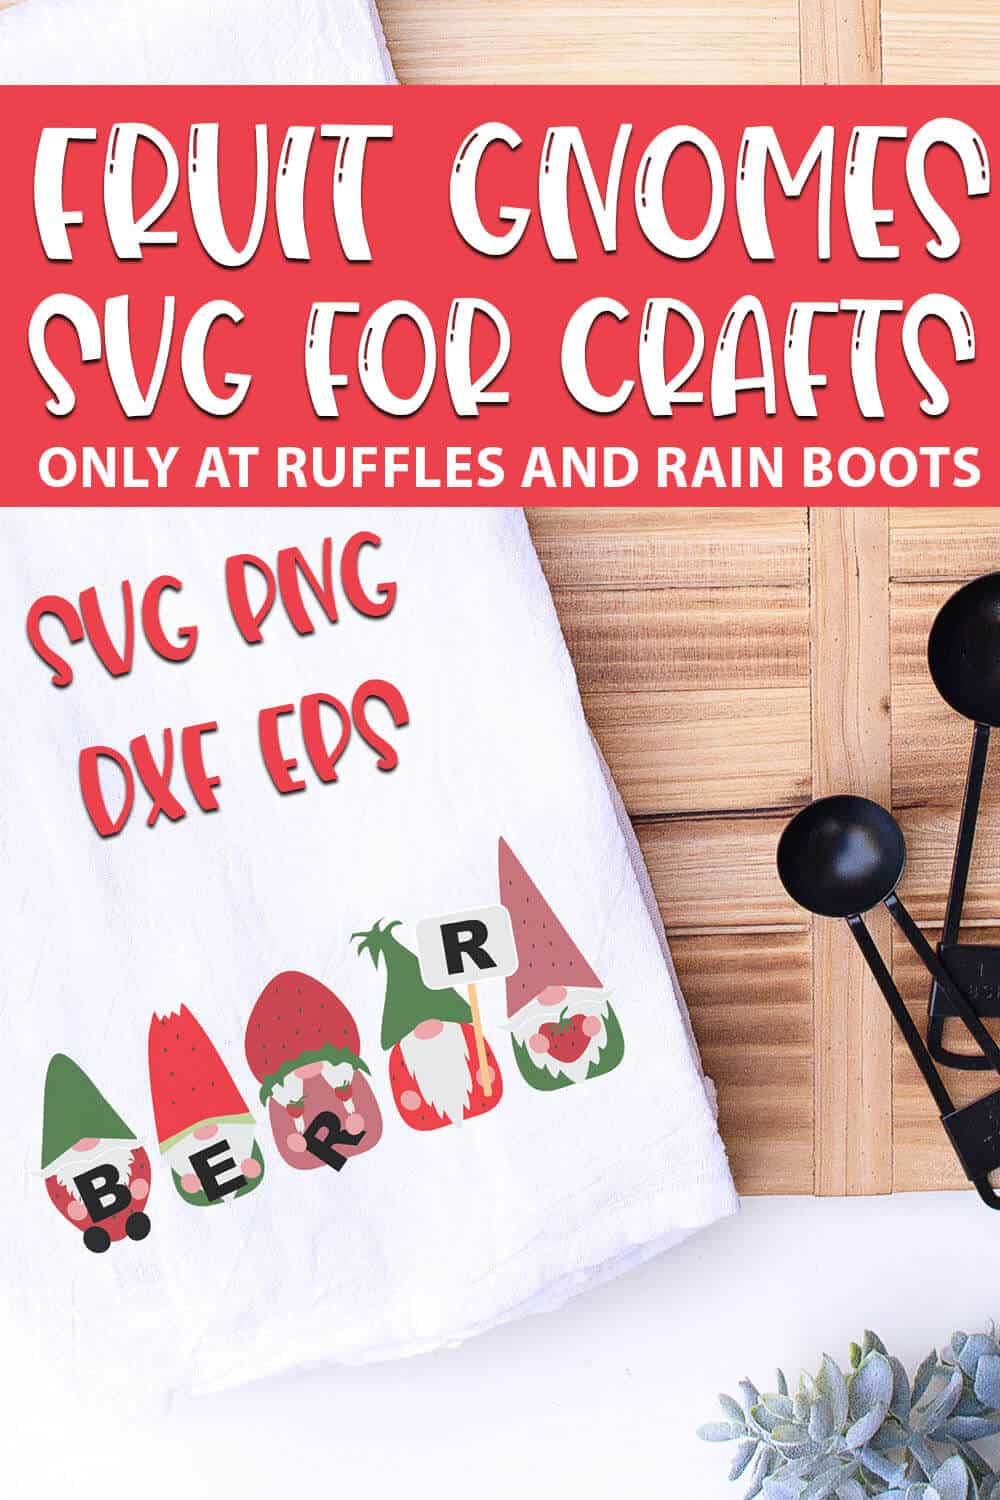 Strawberry Gnome SVGs for farmhouse crafts with text which reads fruit gnomes svg for crafts svg png dxf eps